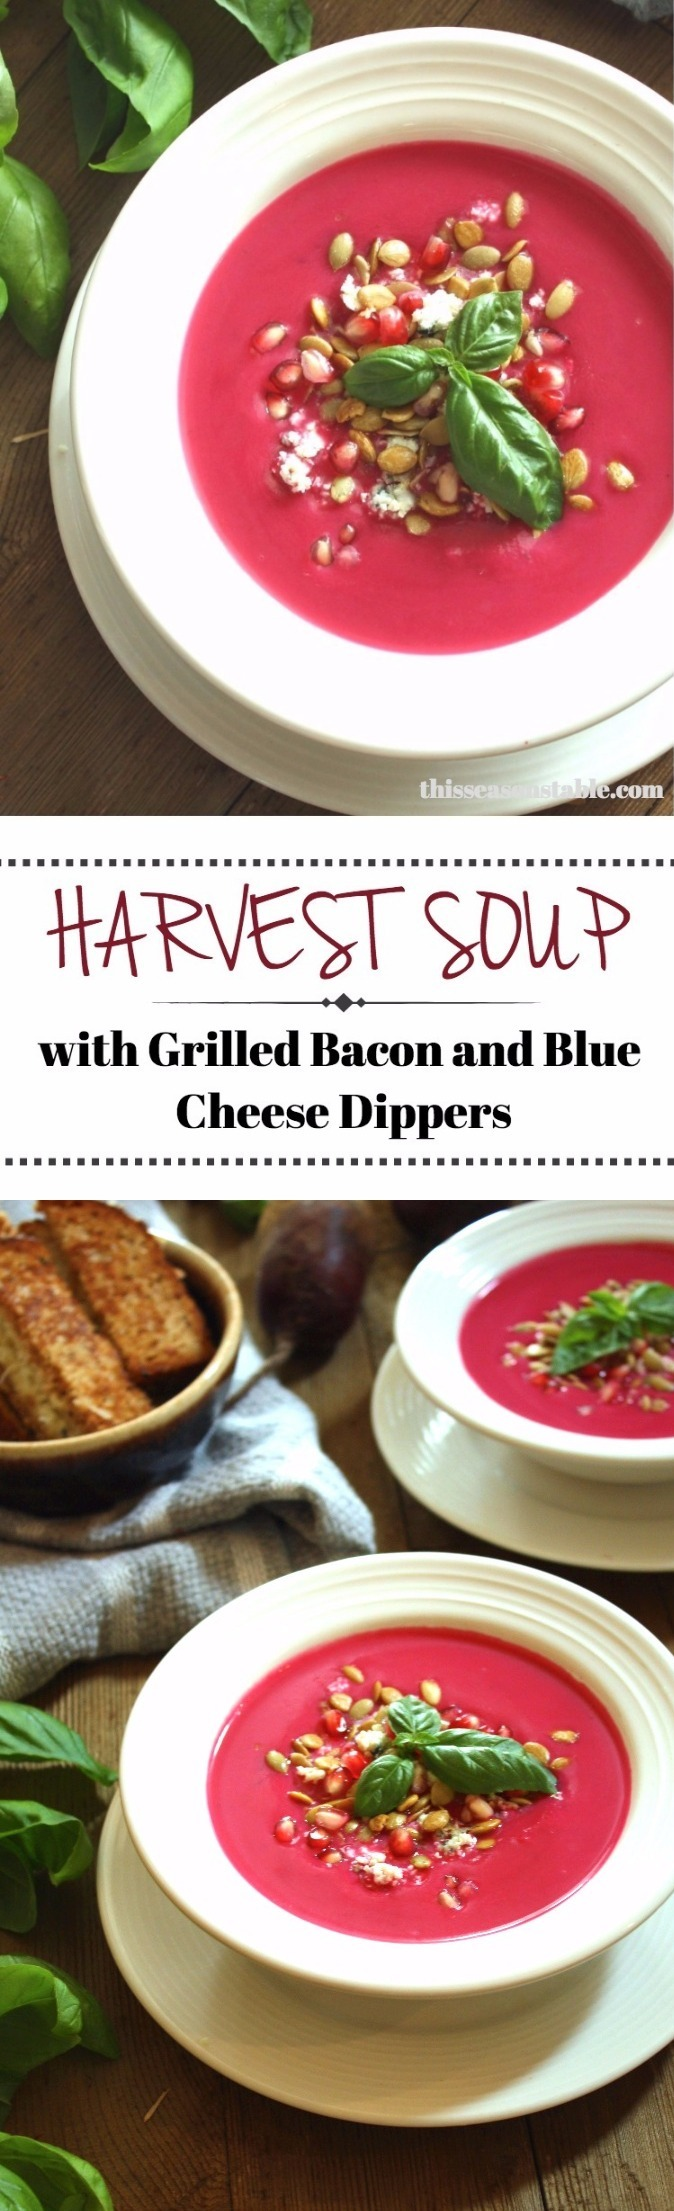 Loaded with apples, beets and seasonal root veggies for the perfect soup blend! Goes great with bacon and blue cheese stuffed bread dippers!